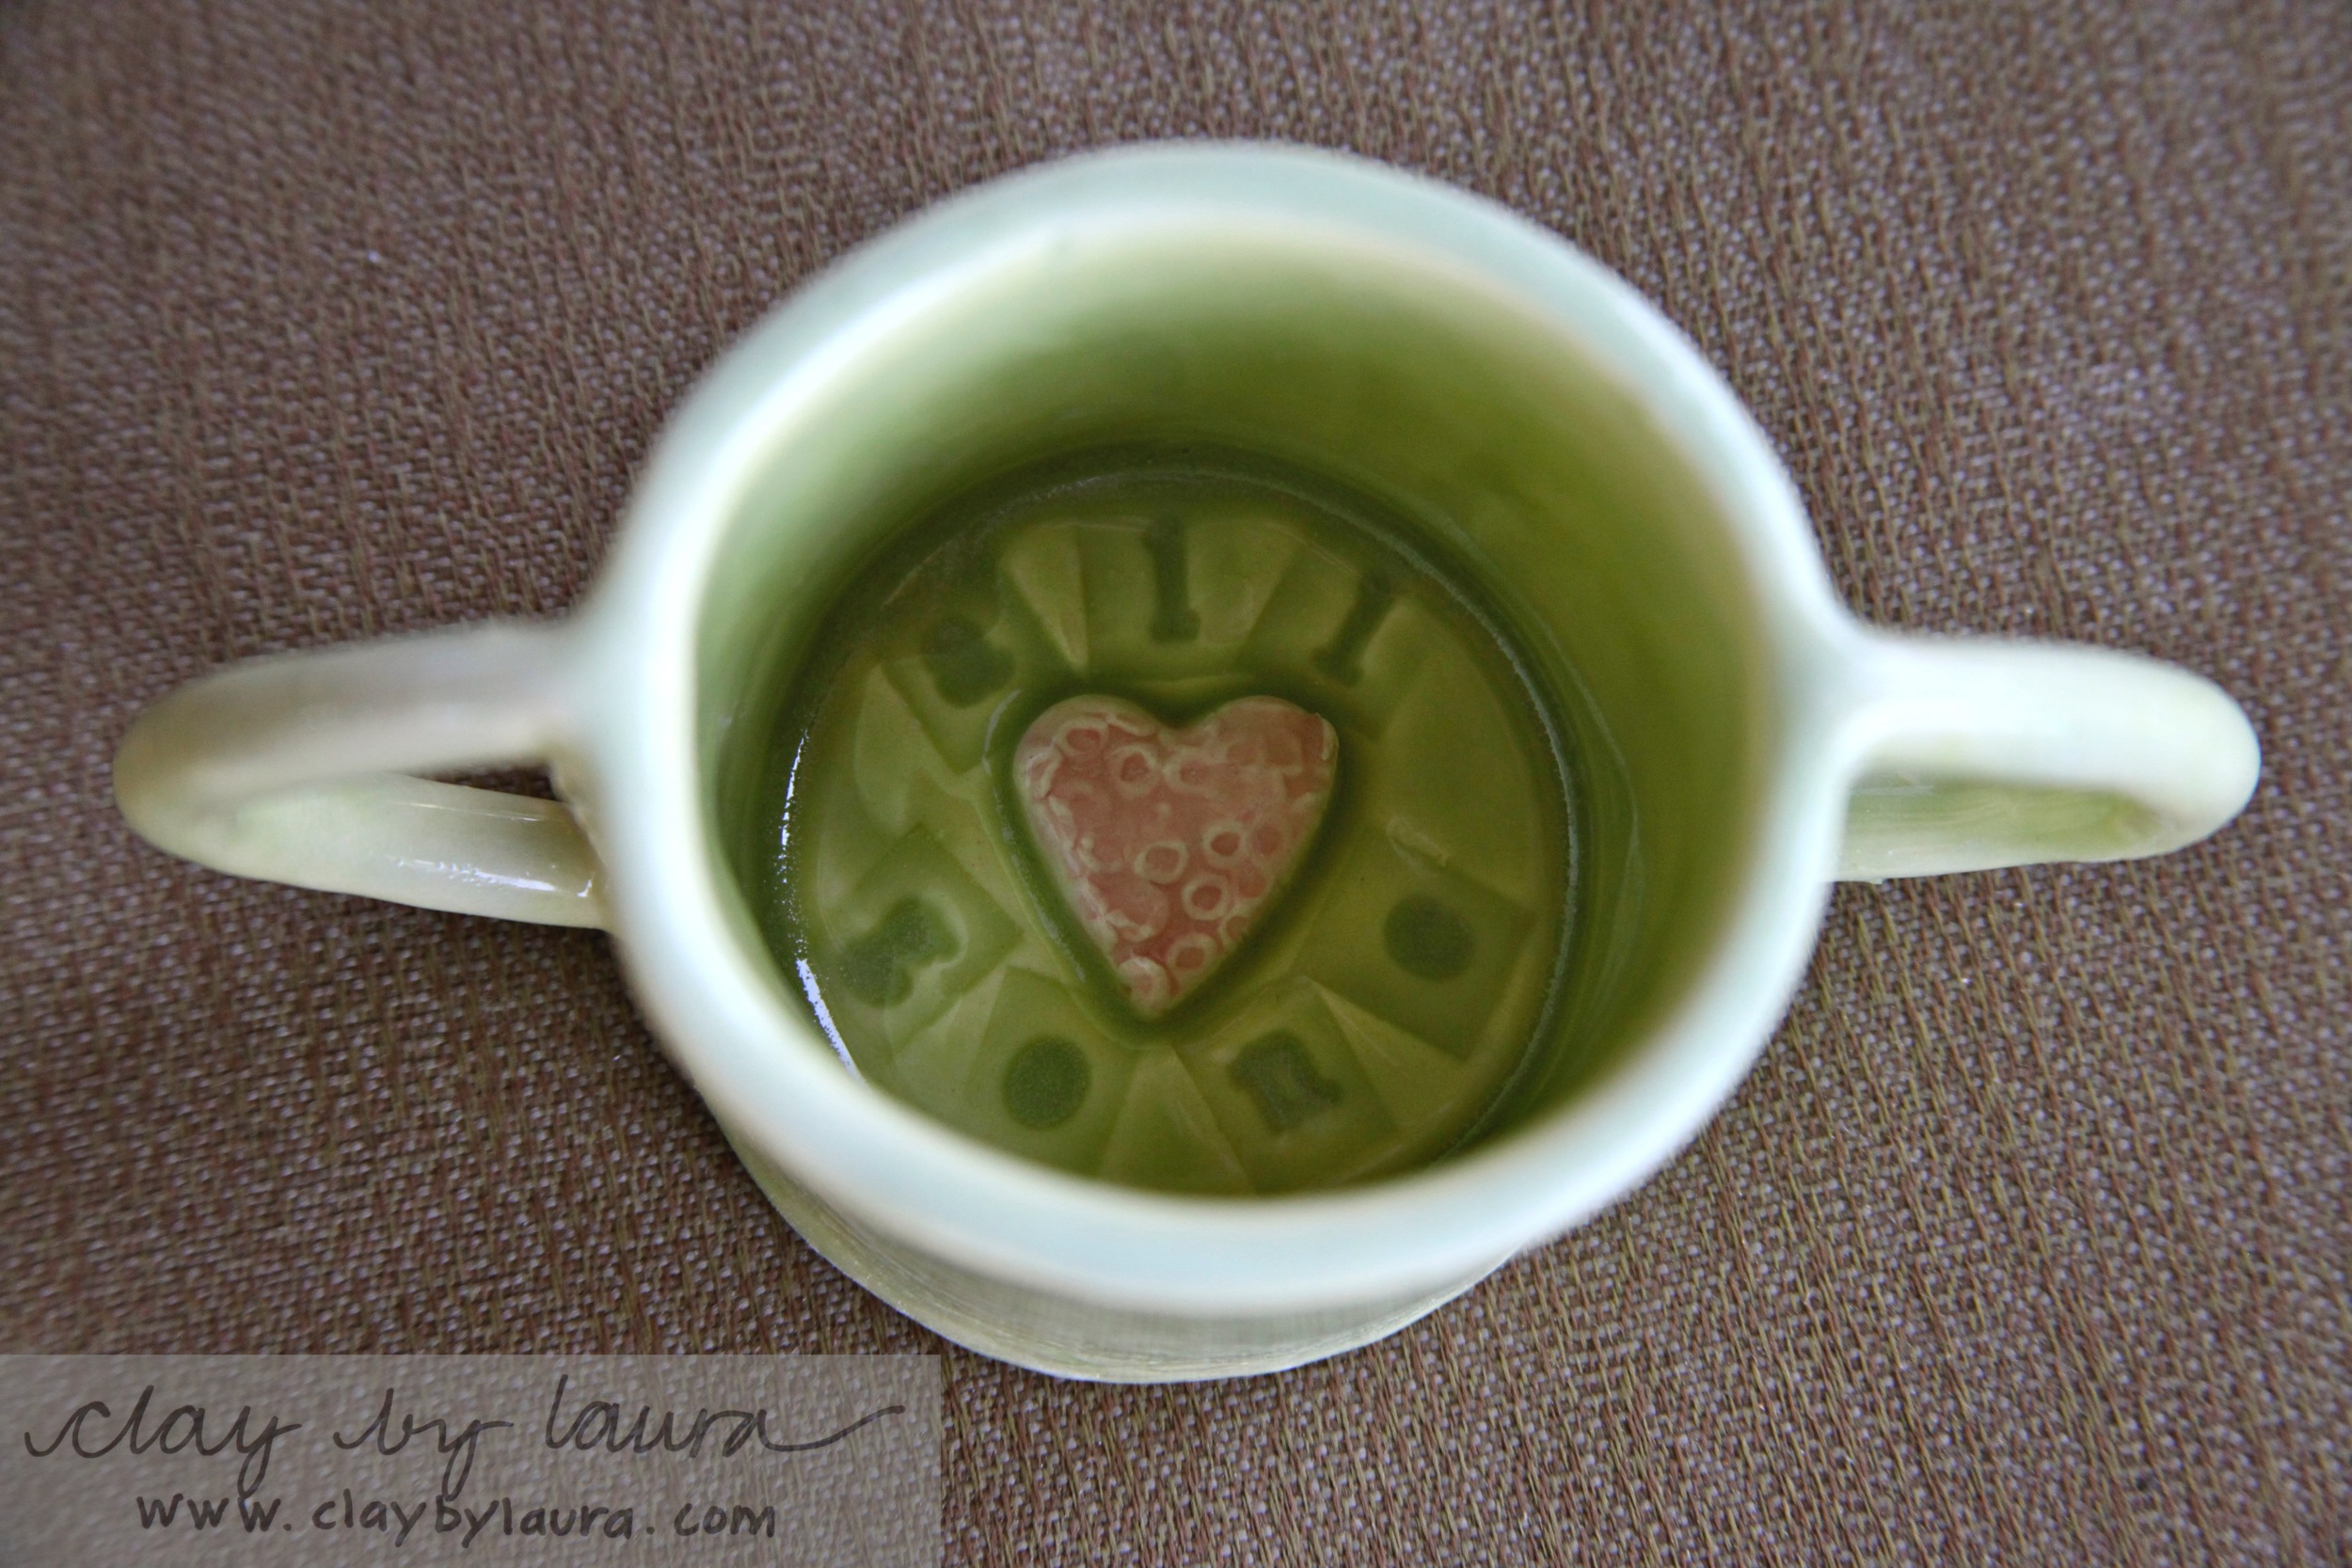 This custom ordertwo-handledchildren's mug was created with a fun message inside.